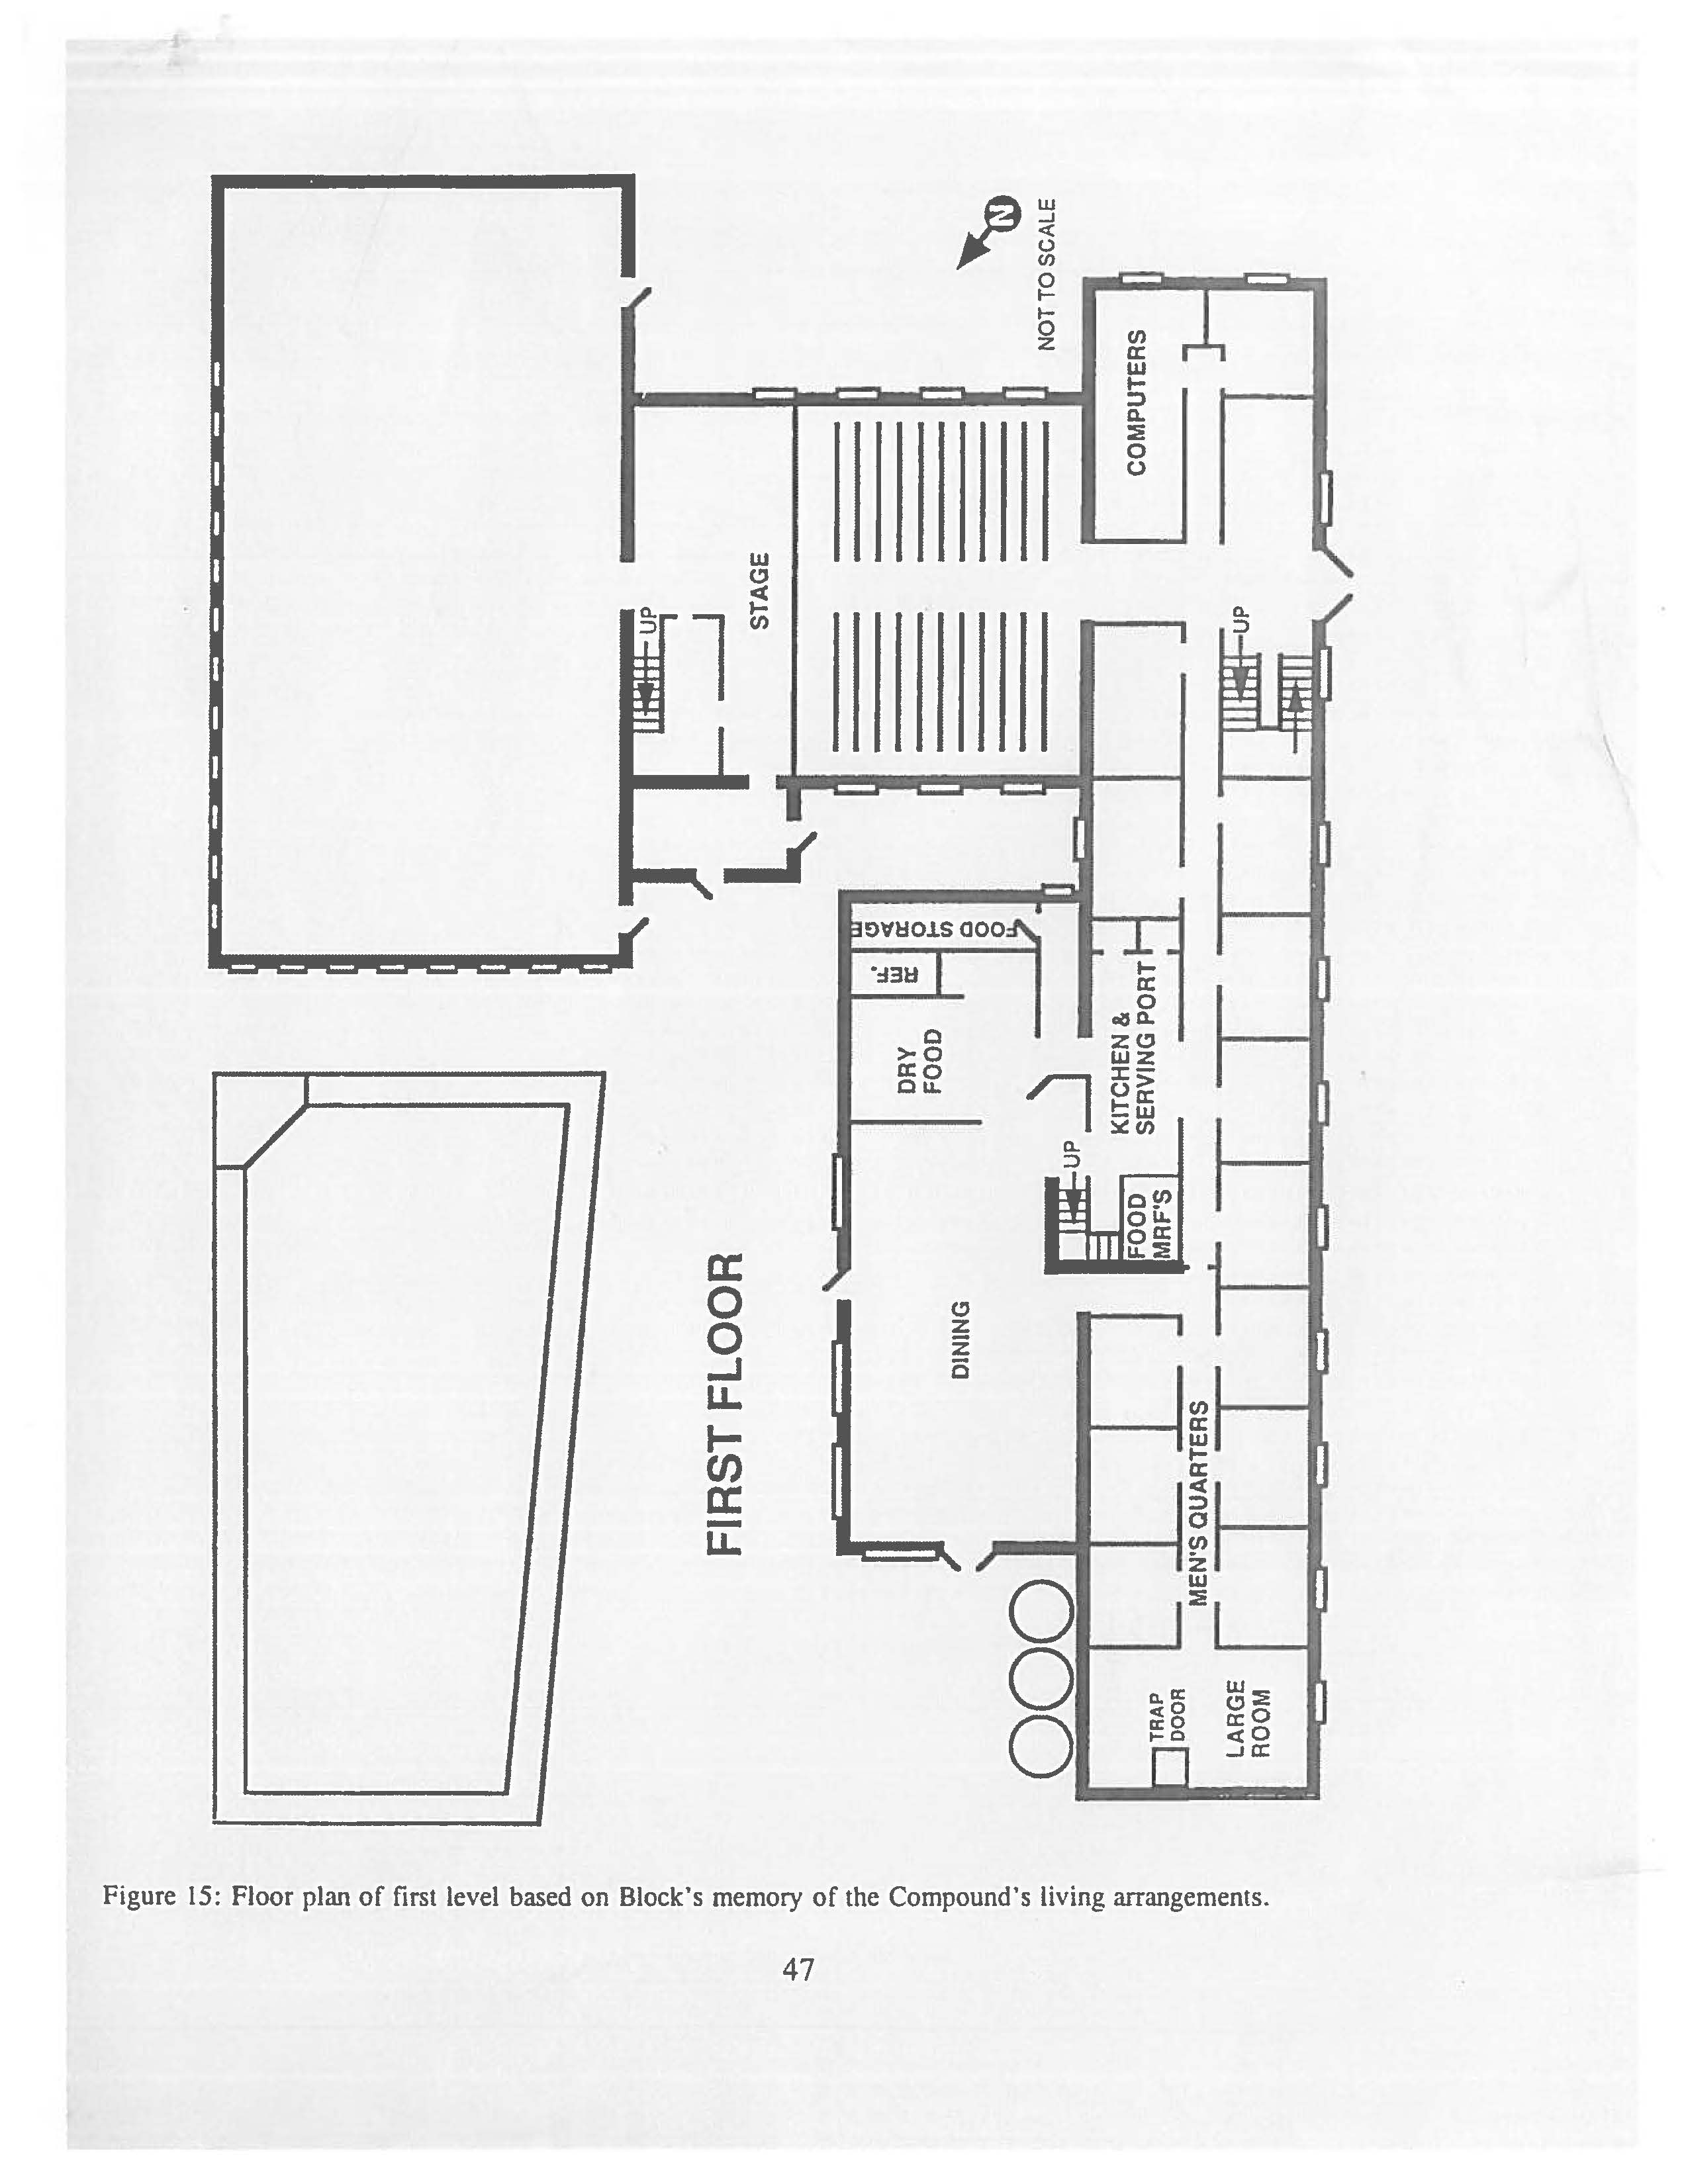 Mount Carmel floor plan of the 1st level.